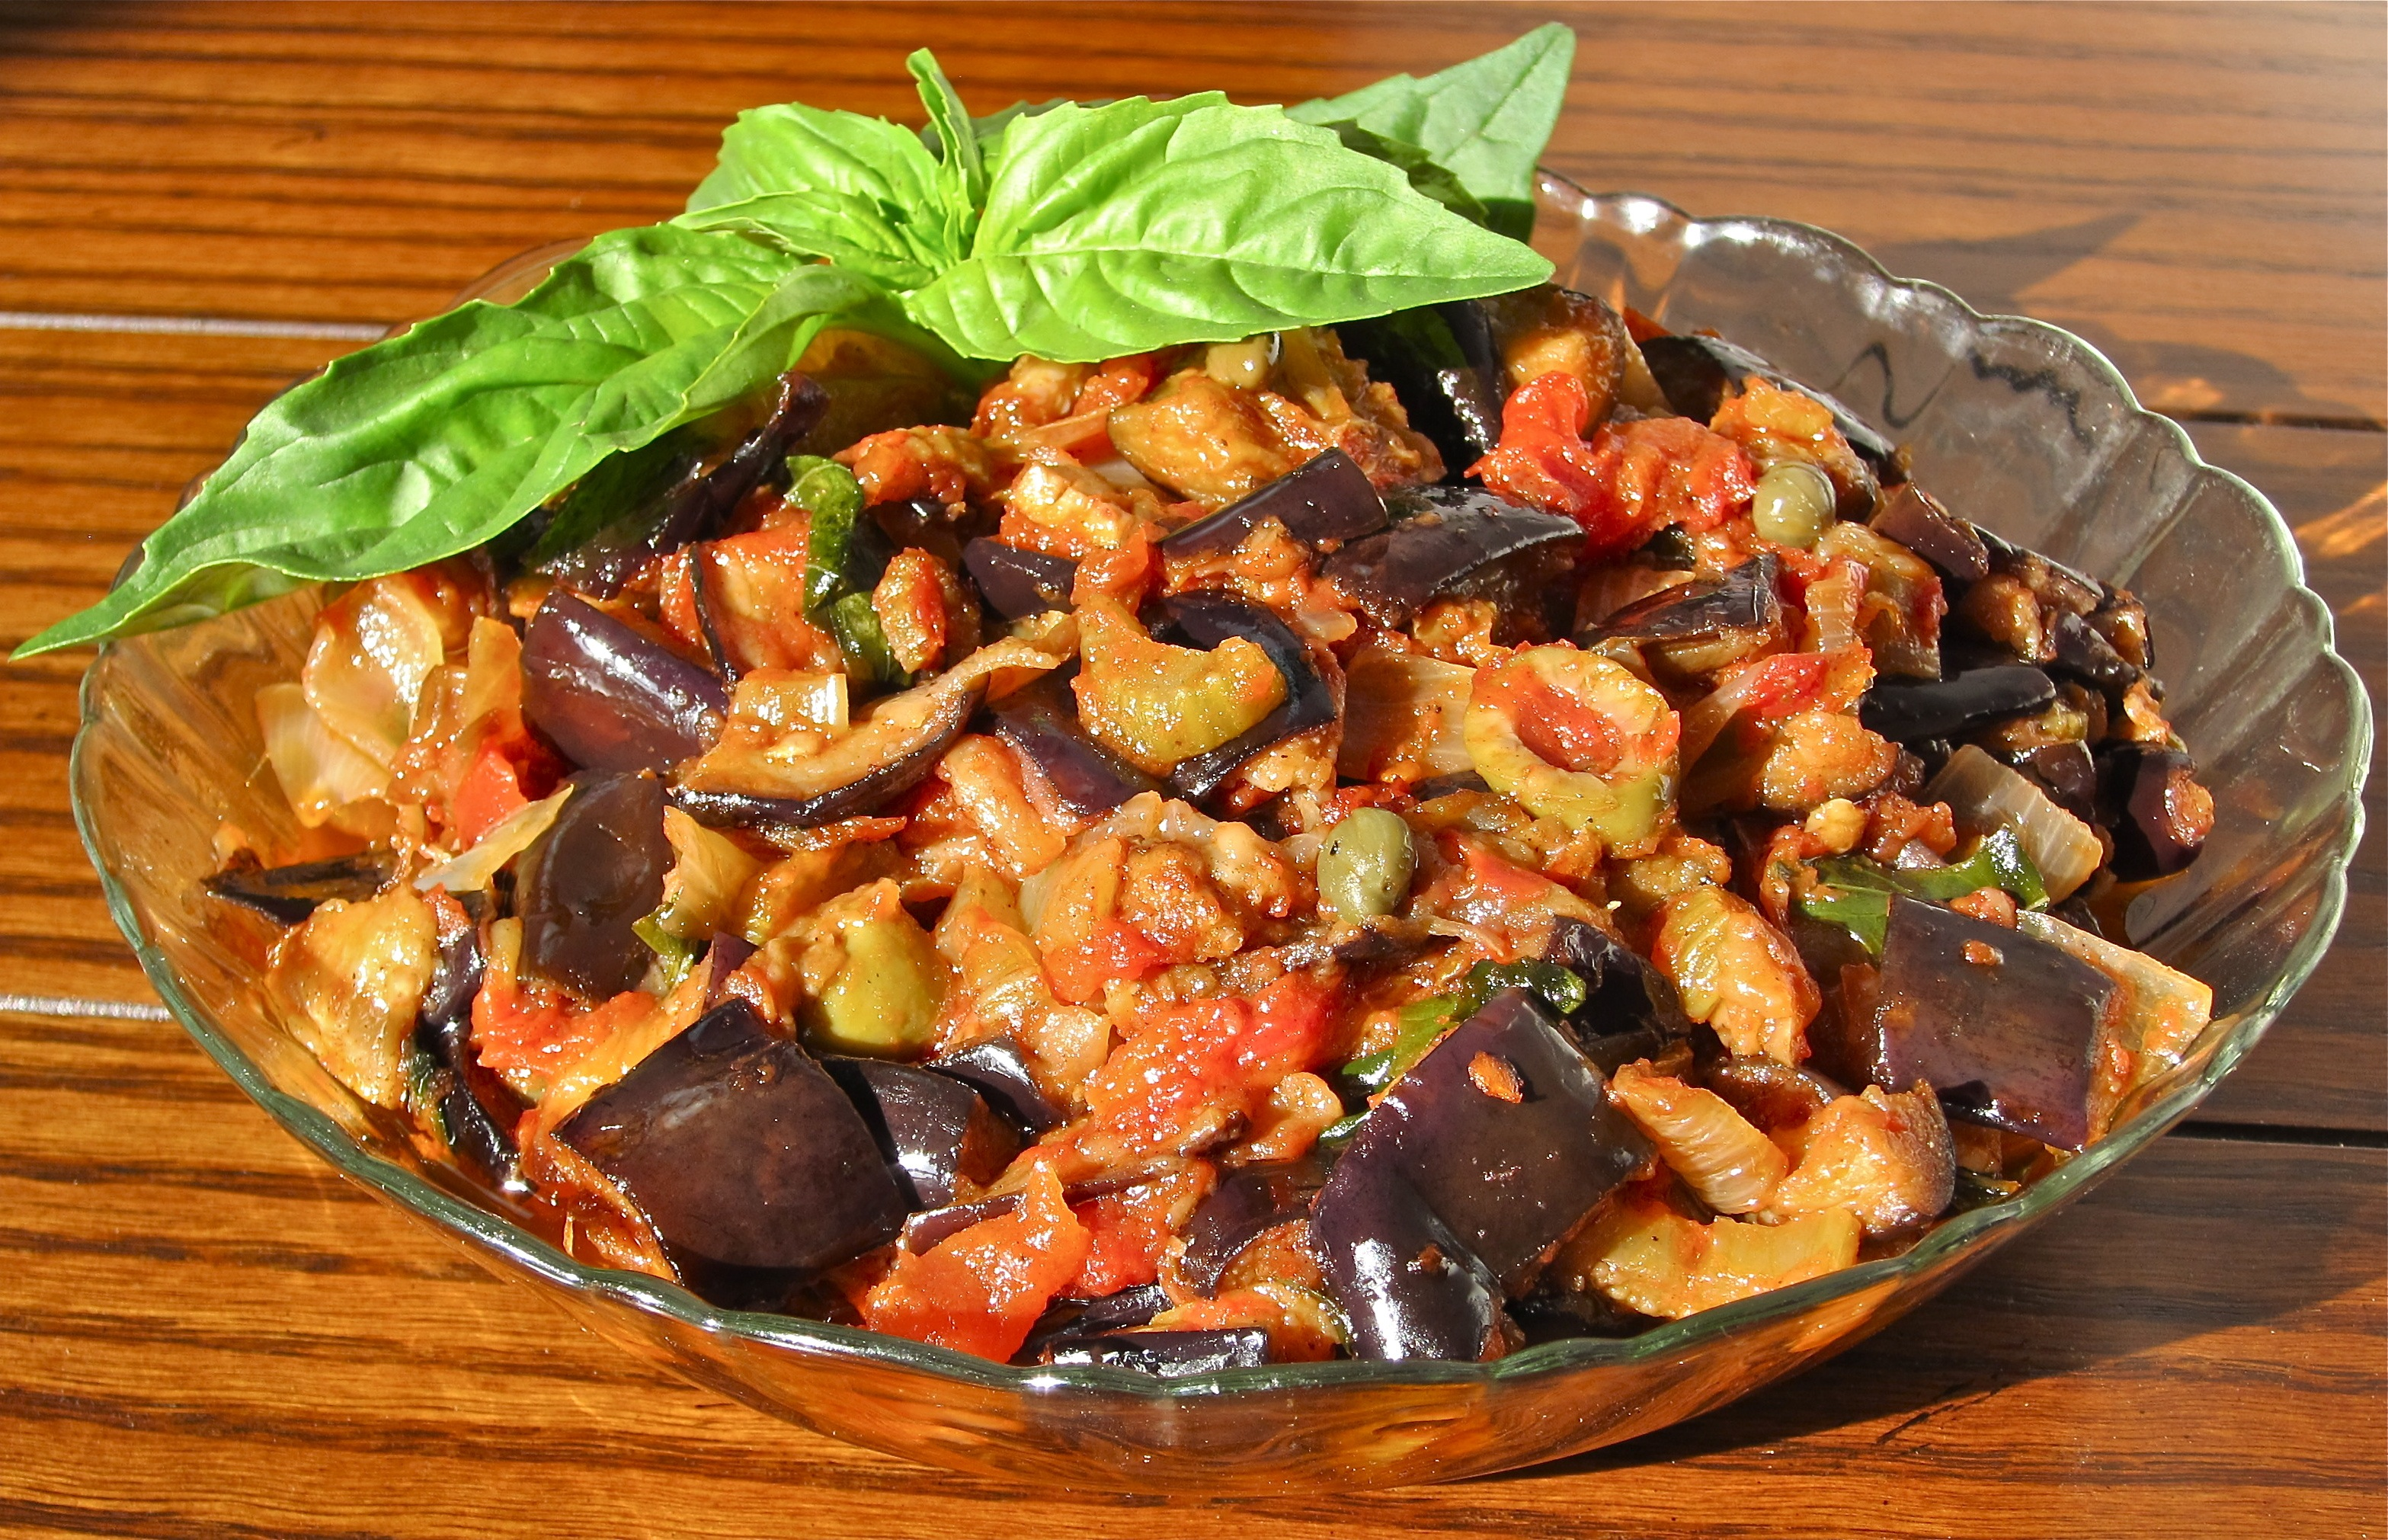 Caponata Siciliana (Eggplant and Vegetable Cooked Salad) | Gianni's ...